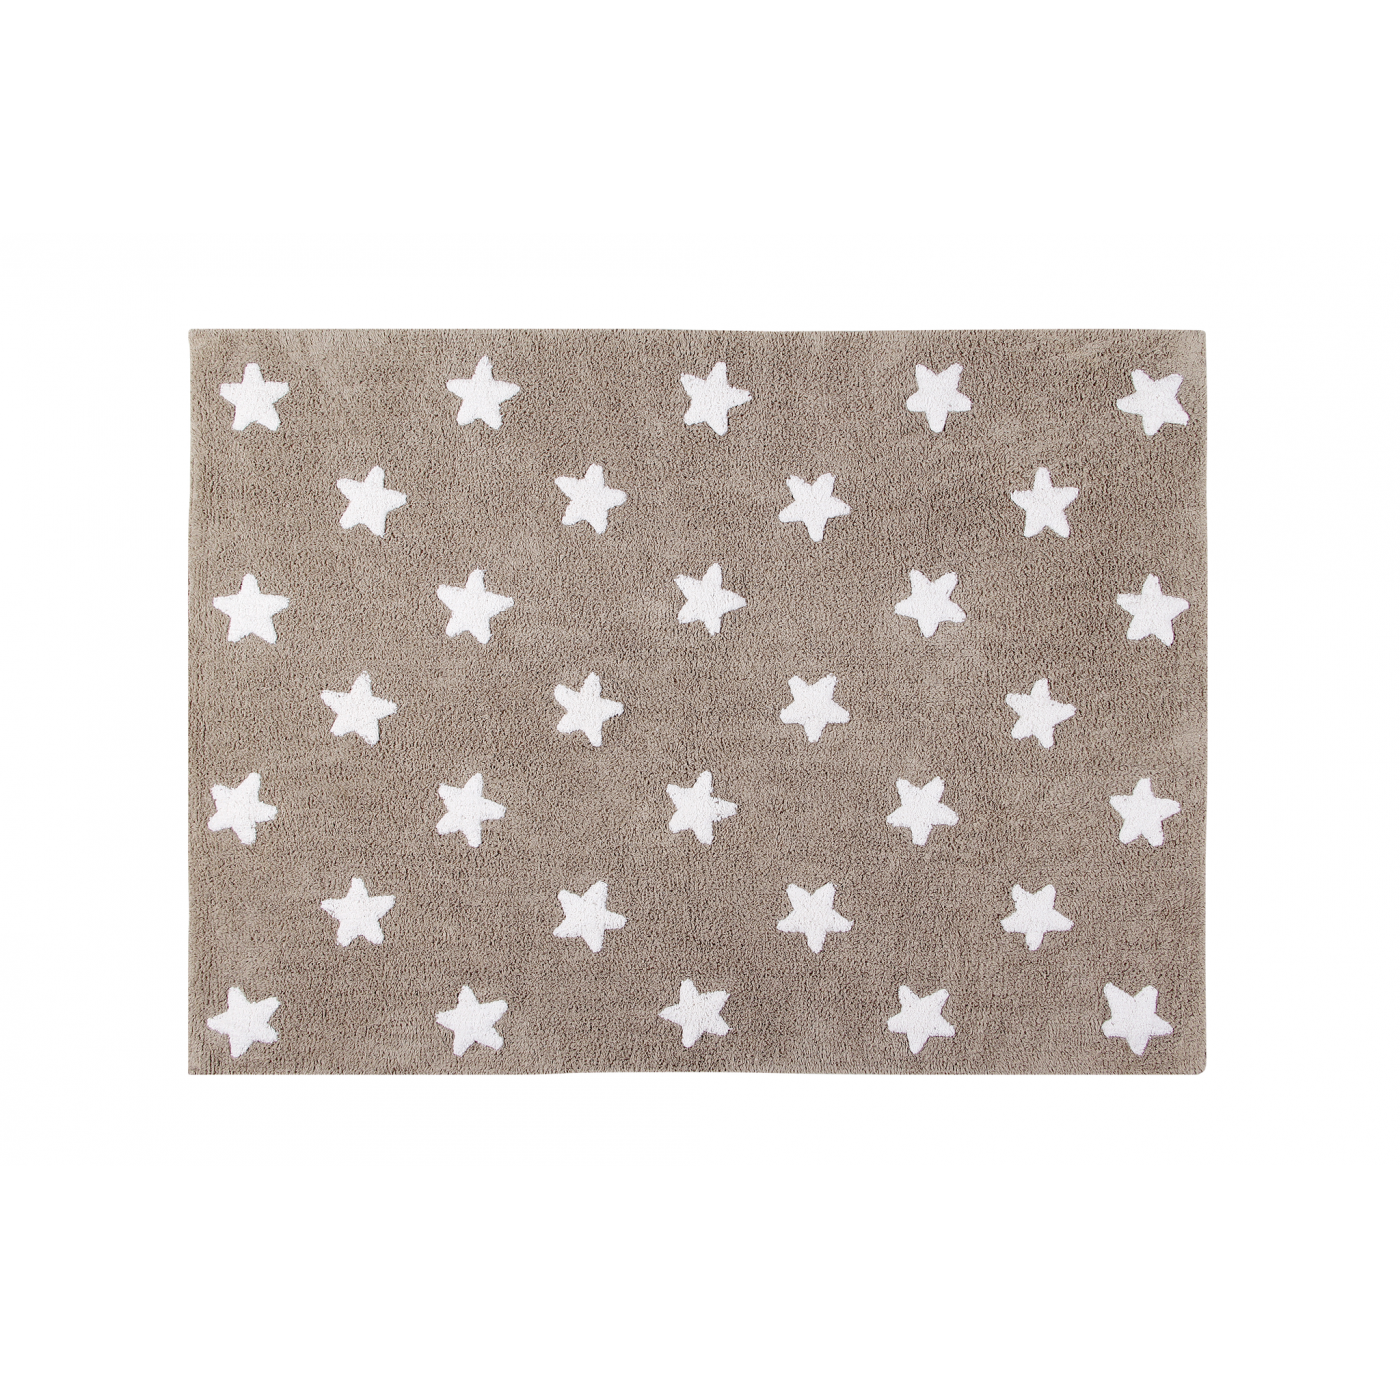 Tapis Beige Etoiles Blanches 120x160 Yadayada